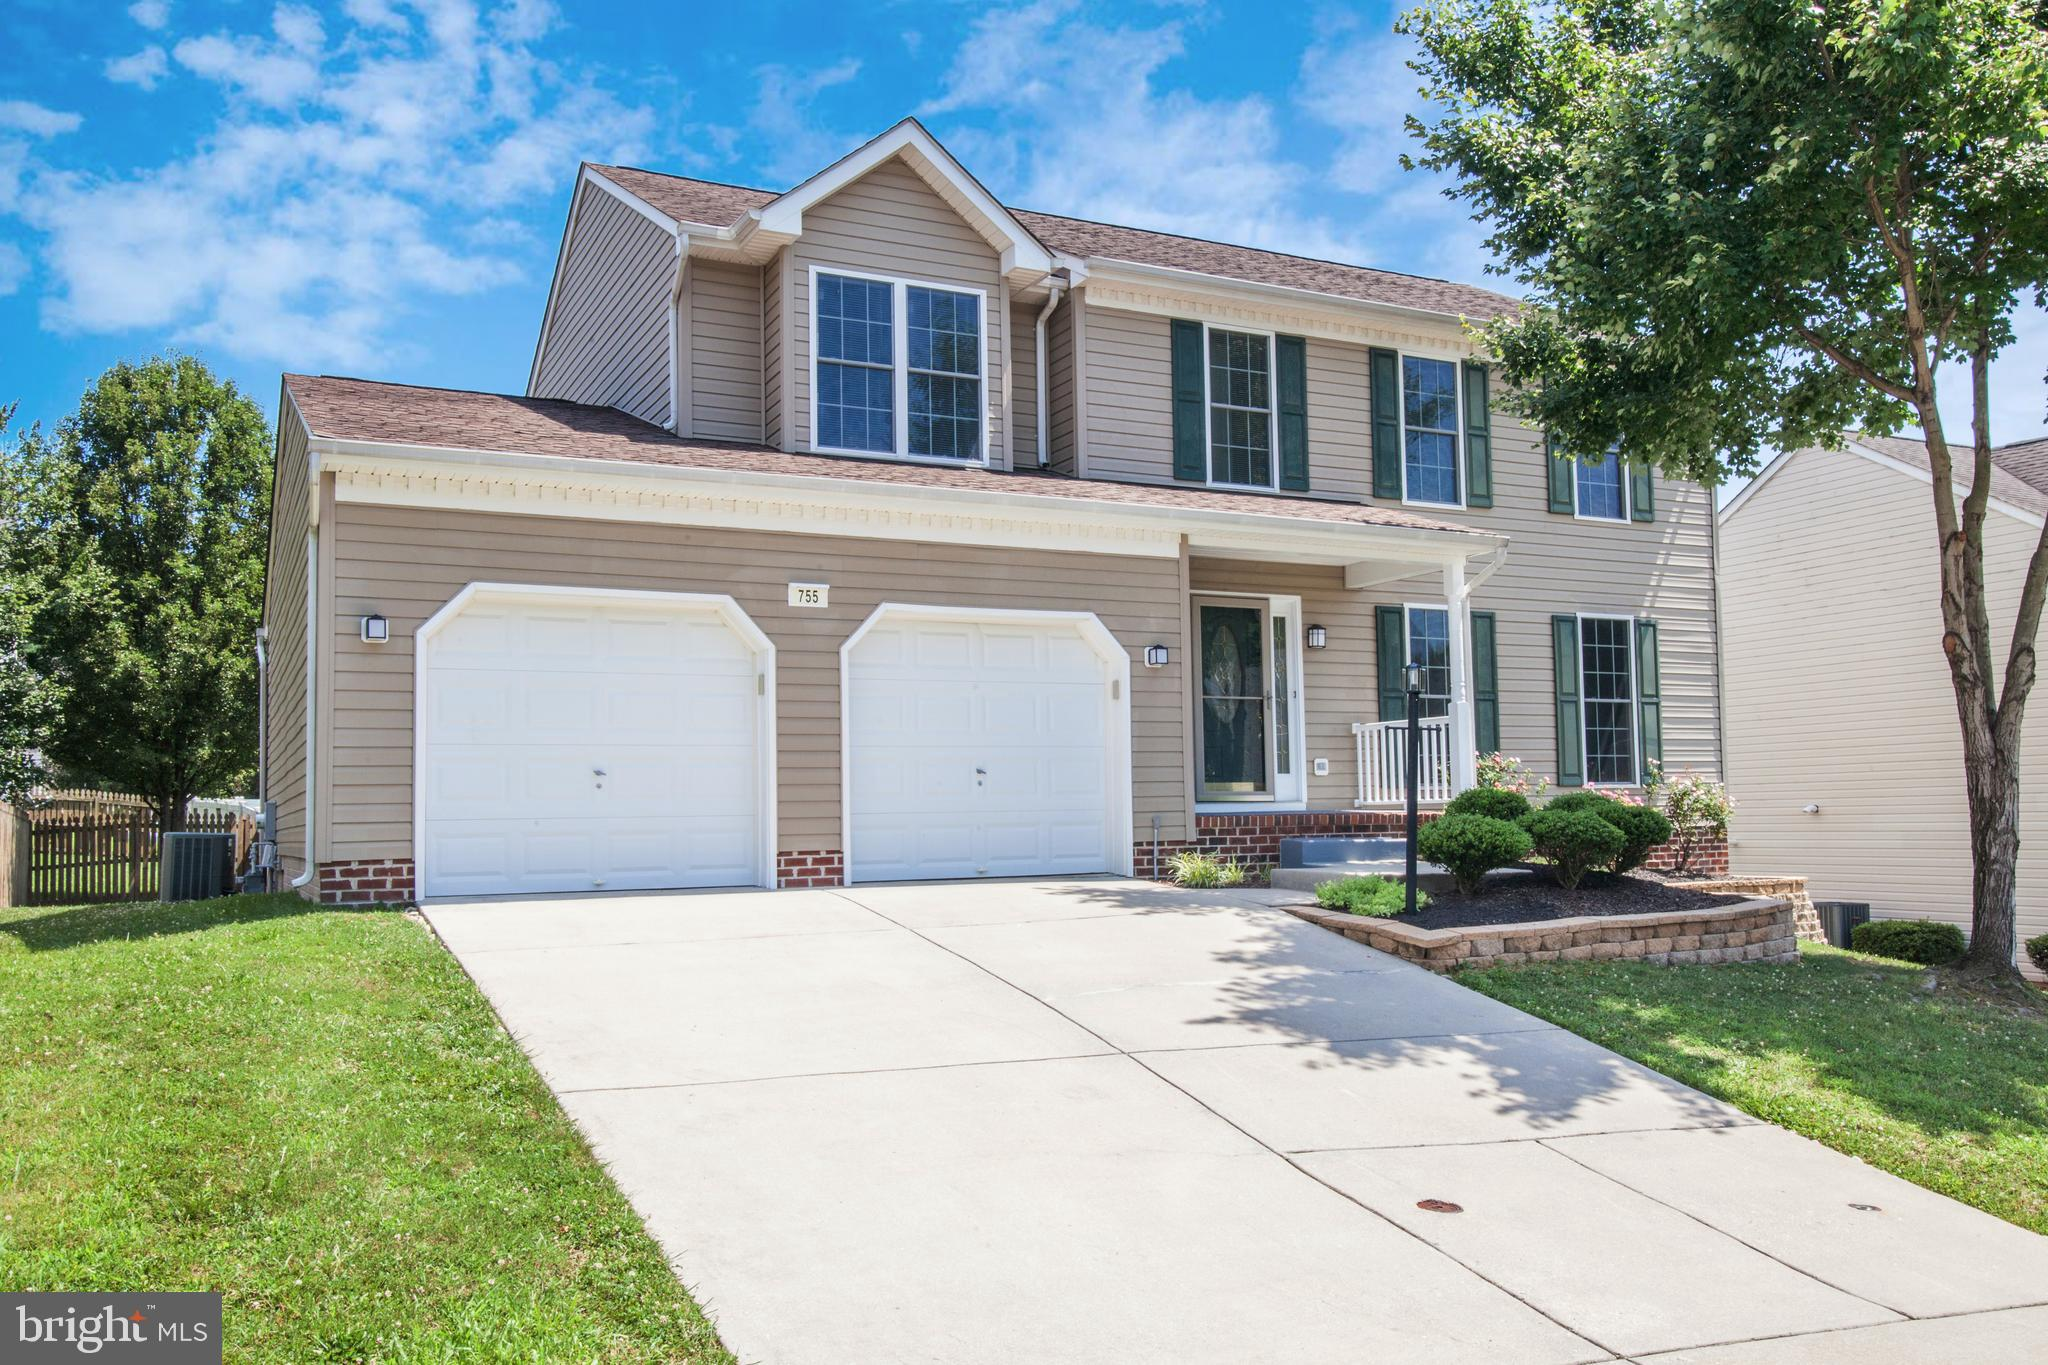 755 CONCORD POINT DRIVE, PERRYVILLE, MD 21903